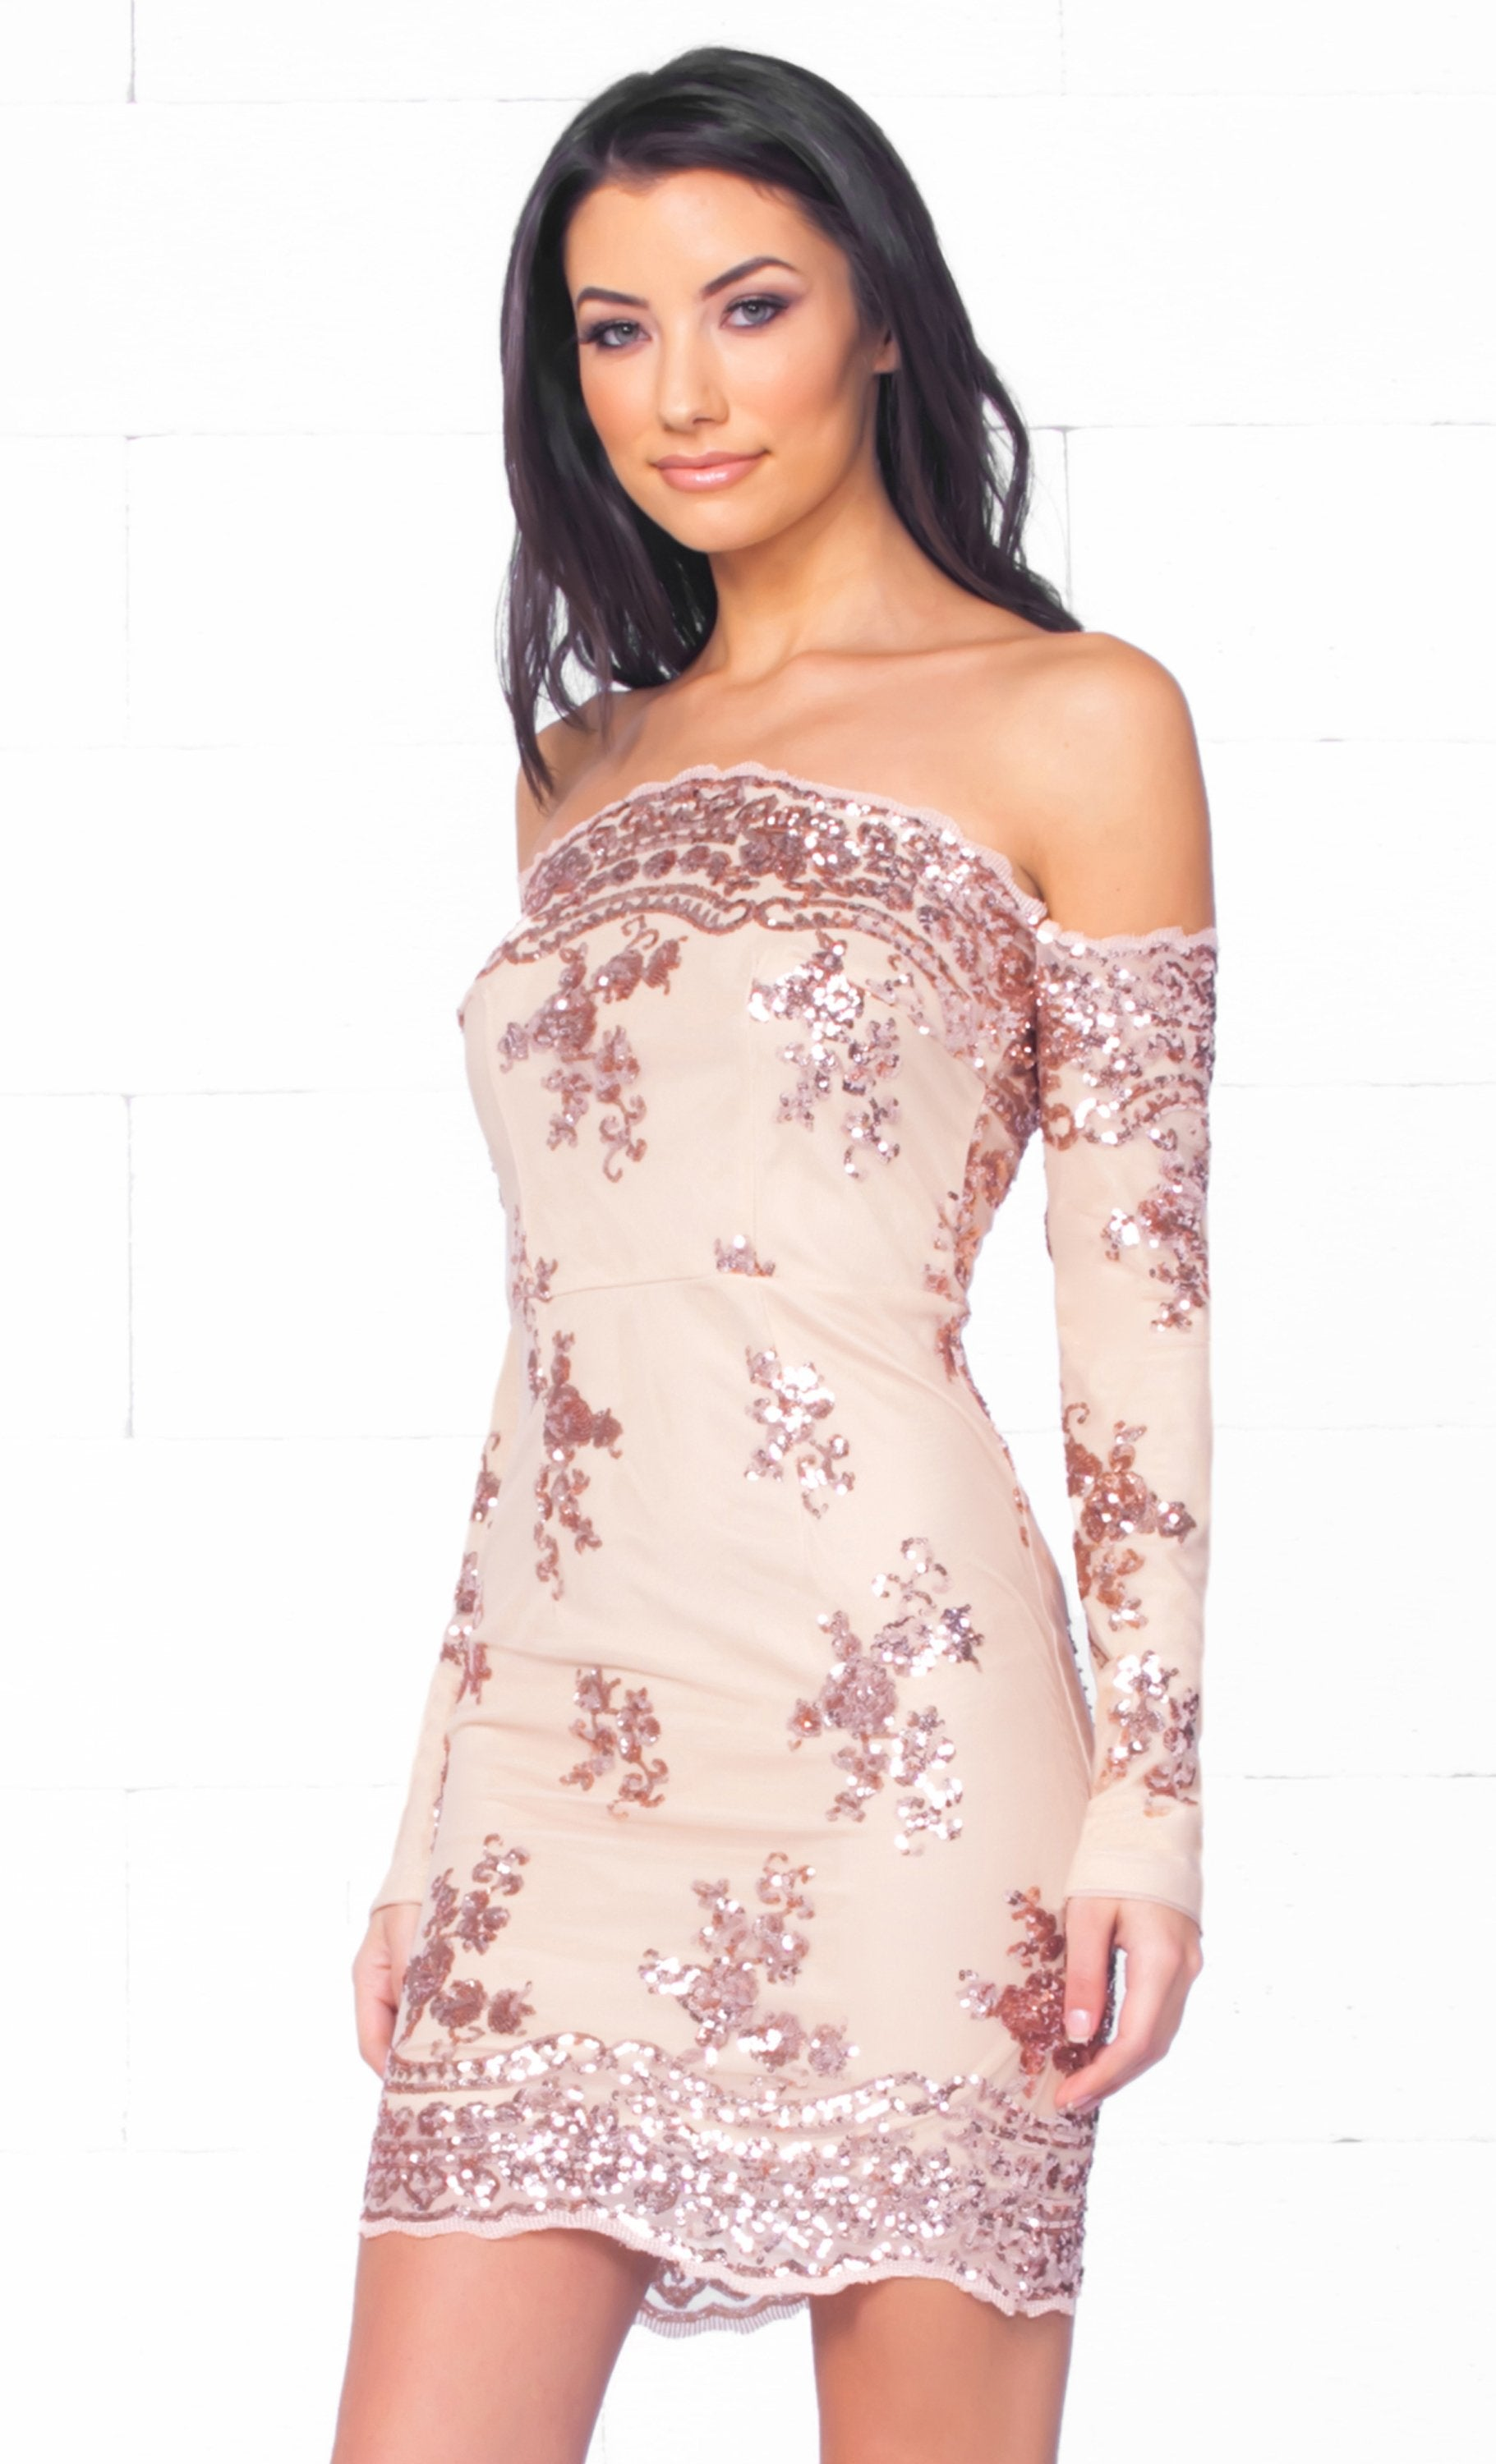 Indie XO Champagne Kisses Beige Gold Sequin Long Sleeve Off The Shoulder Bodycon Mini Dress - Just Ours!